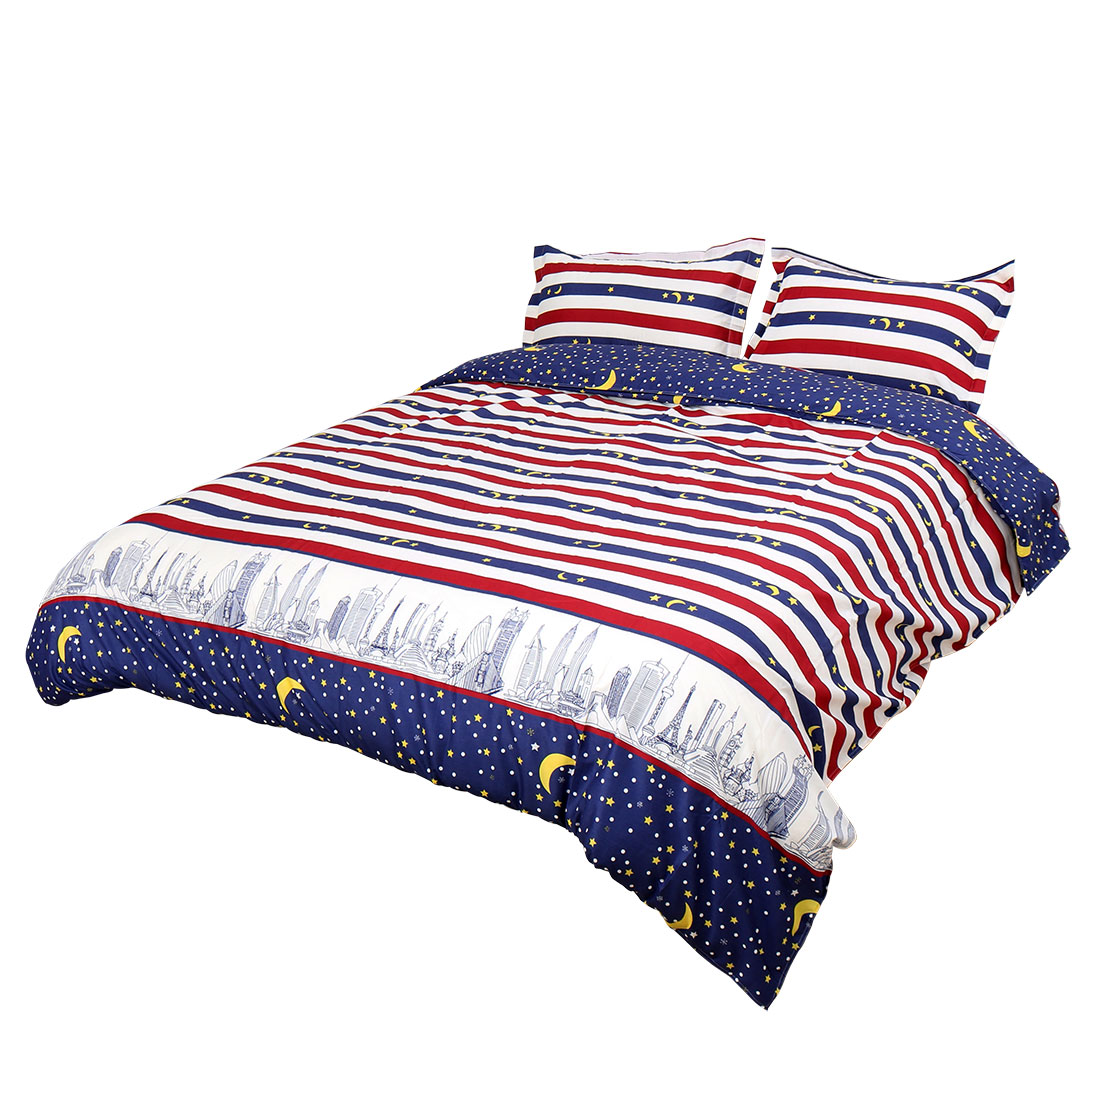 City Night Pattern Duvet Cover Pillowcase Quilt Cover Bedding Set King Size